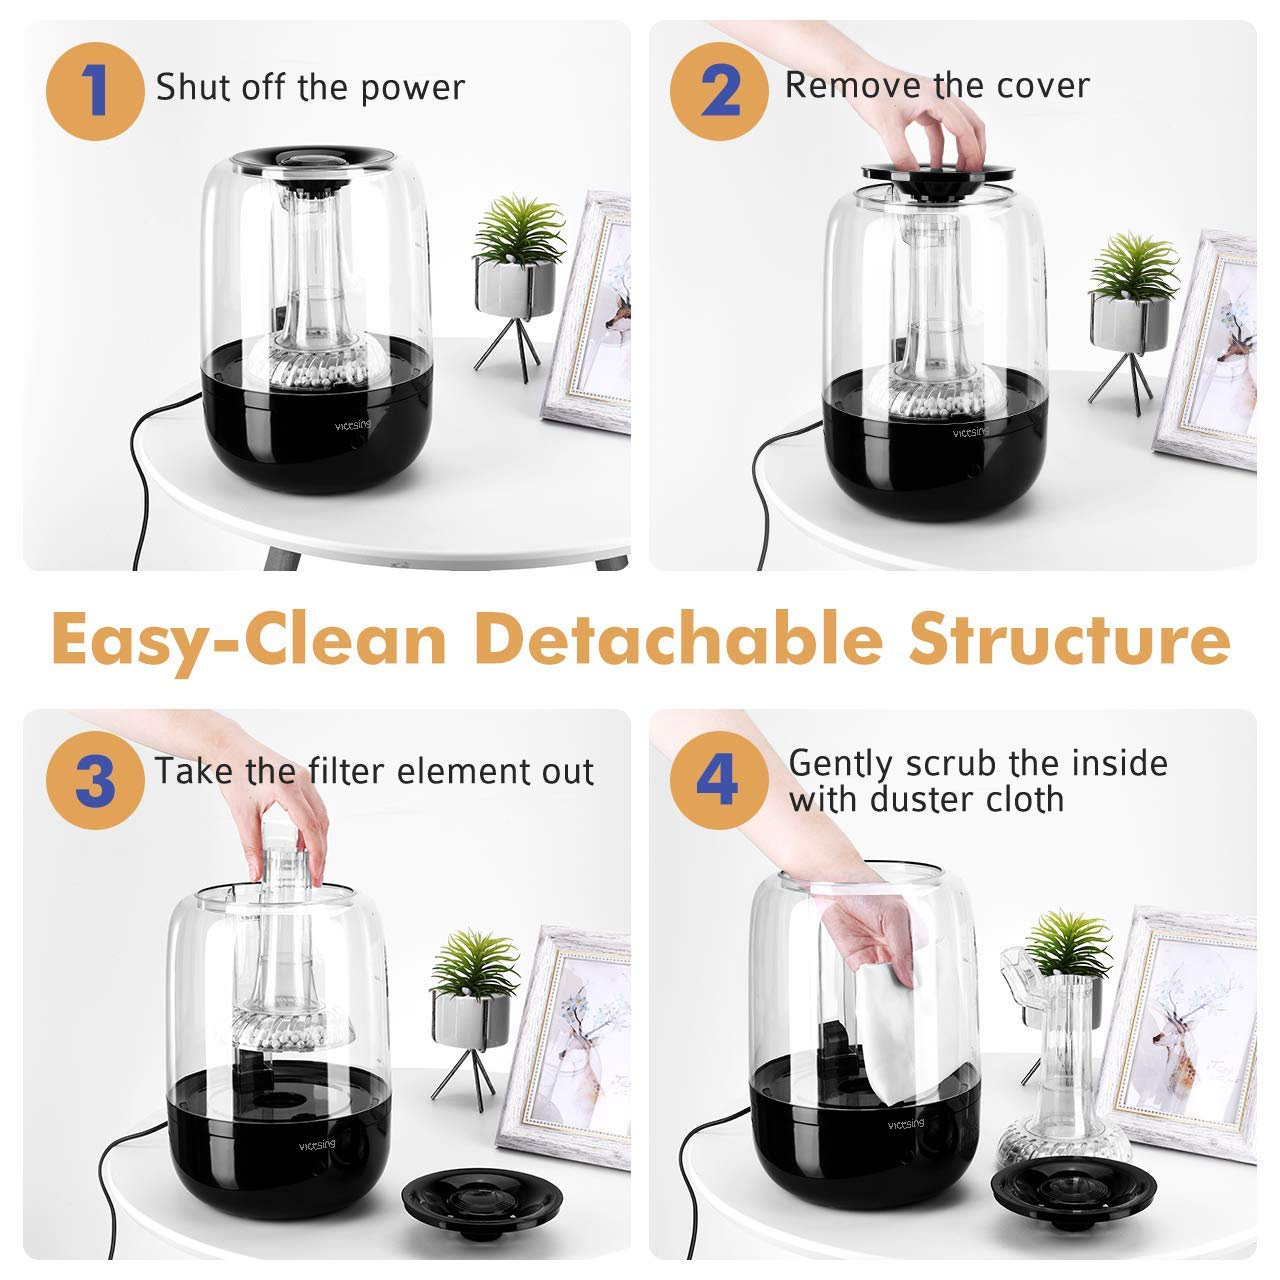 Large Vaporizer Humidifying Unit with Whisper-Quiet /& Auto Shut-Off Protection 3L Ultrasonic Cool Mist Humidifier for Baby Bedroom VicTsing Upgraded Humidifiers with Filter Impurities Stone